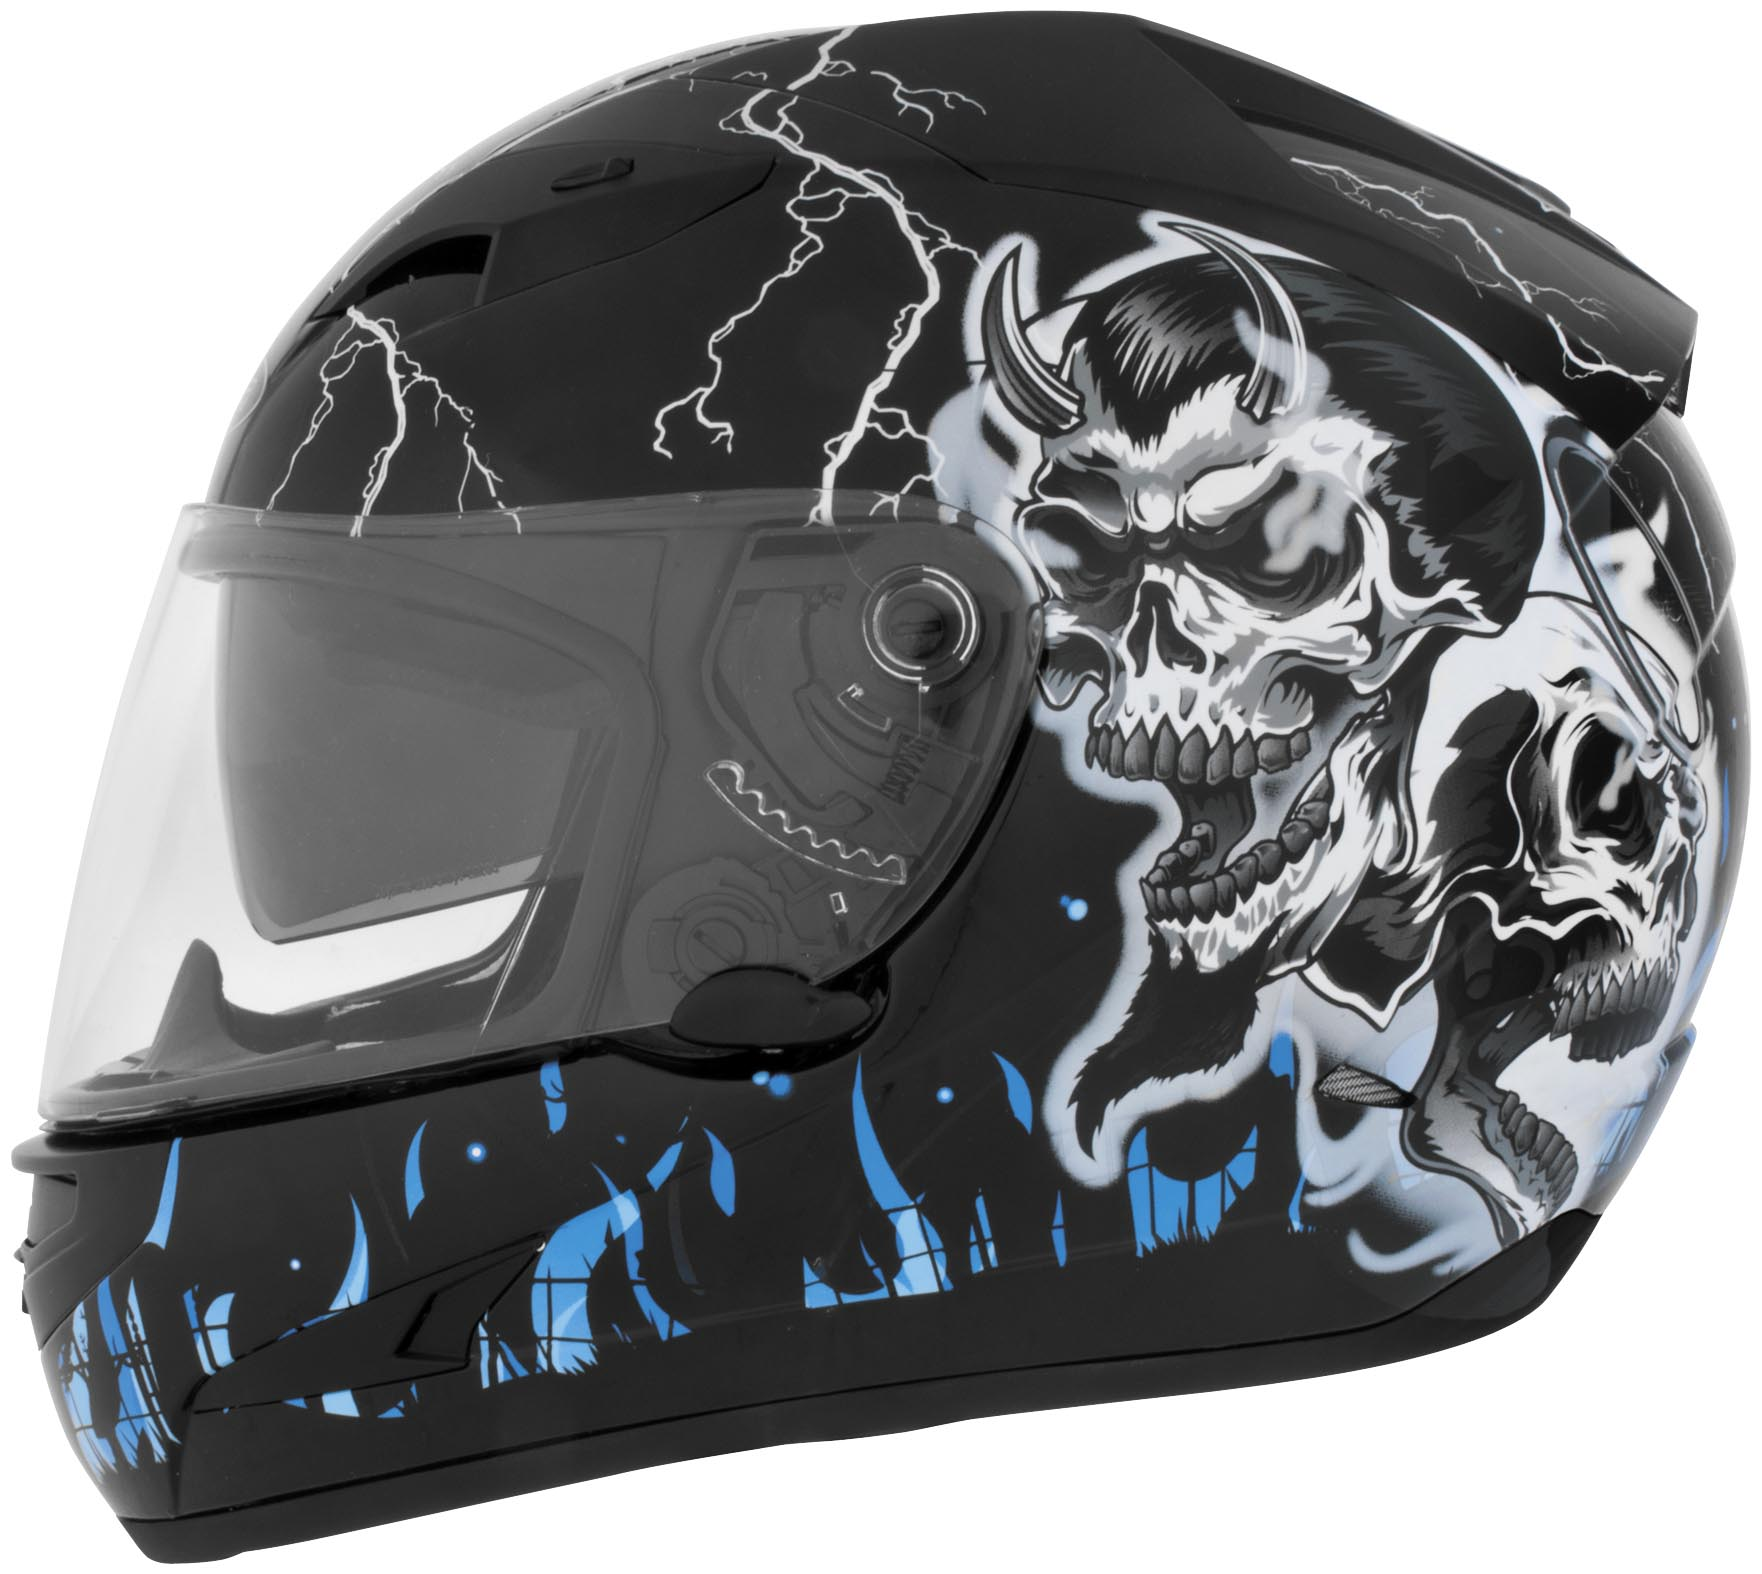 US-97 Good N Evil Helmet